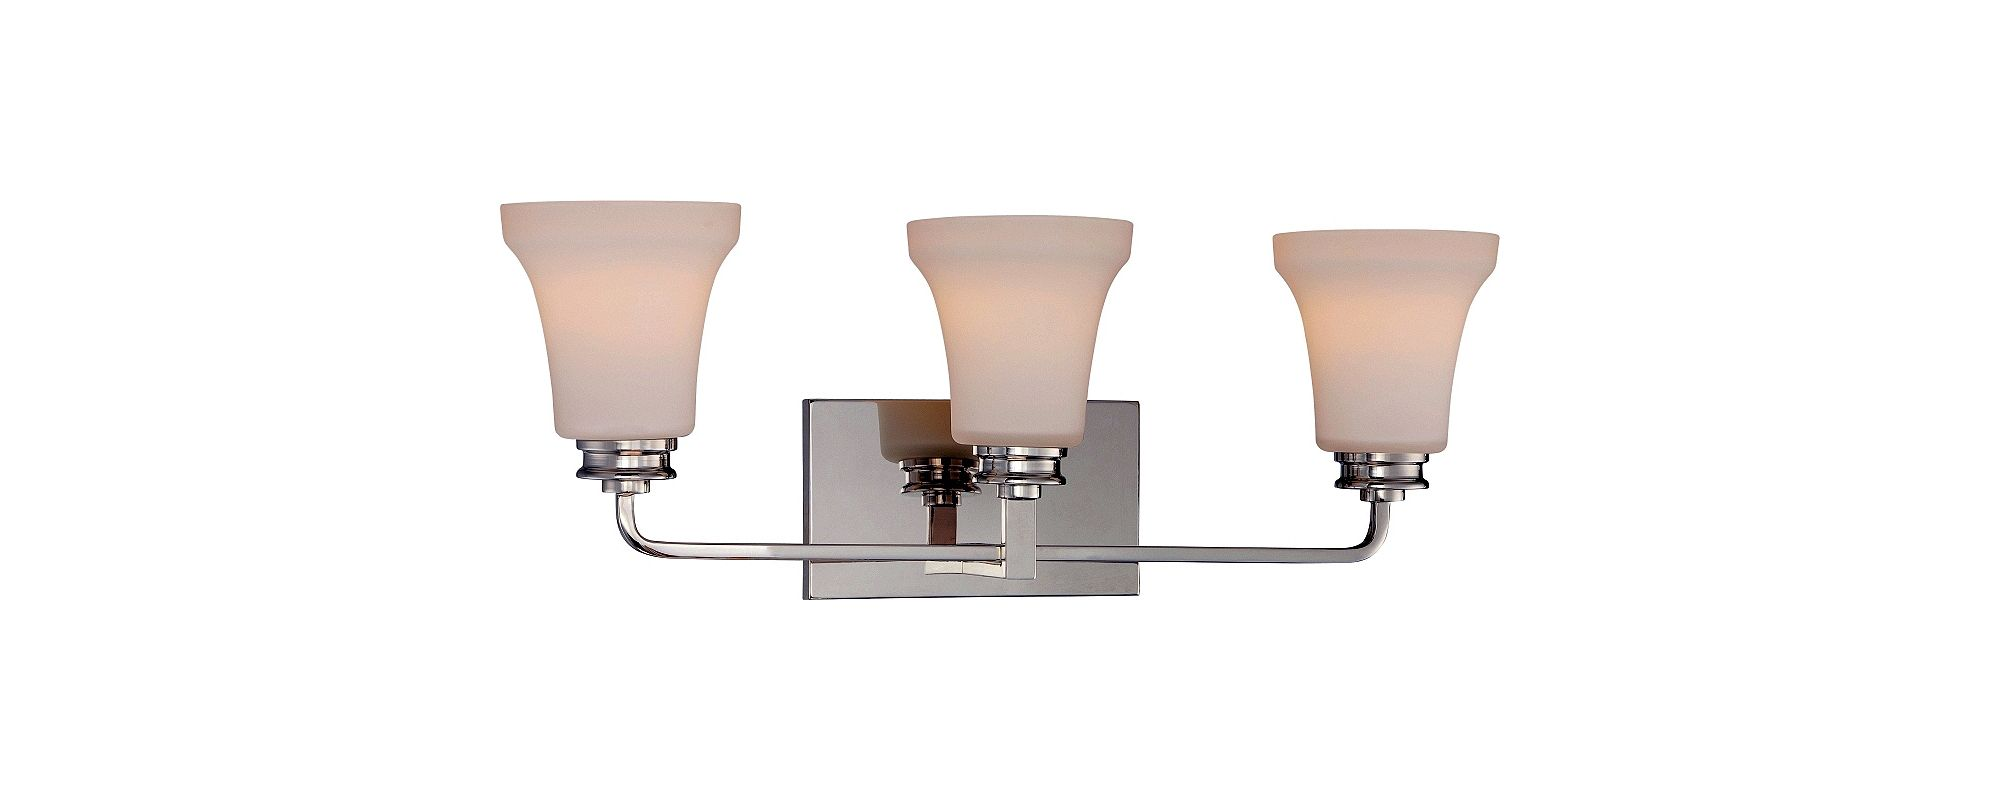 Nuvo Lighting 62/428 Cody 3 Light LED Energy Star Bathroom Sconce